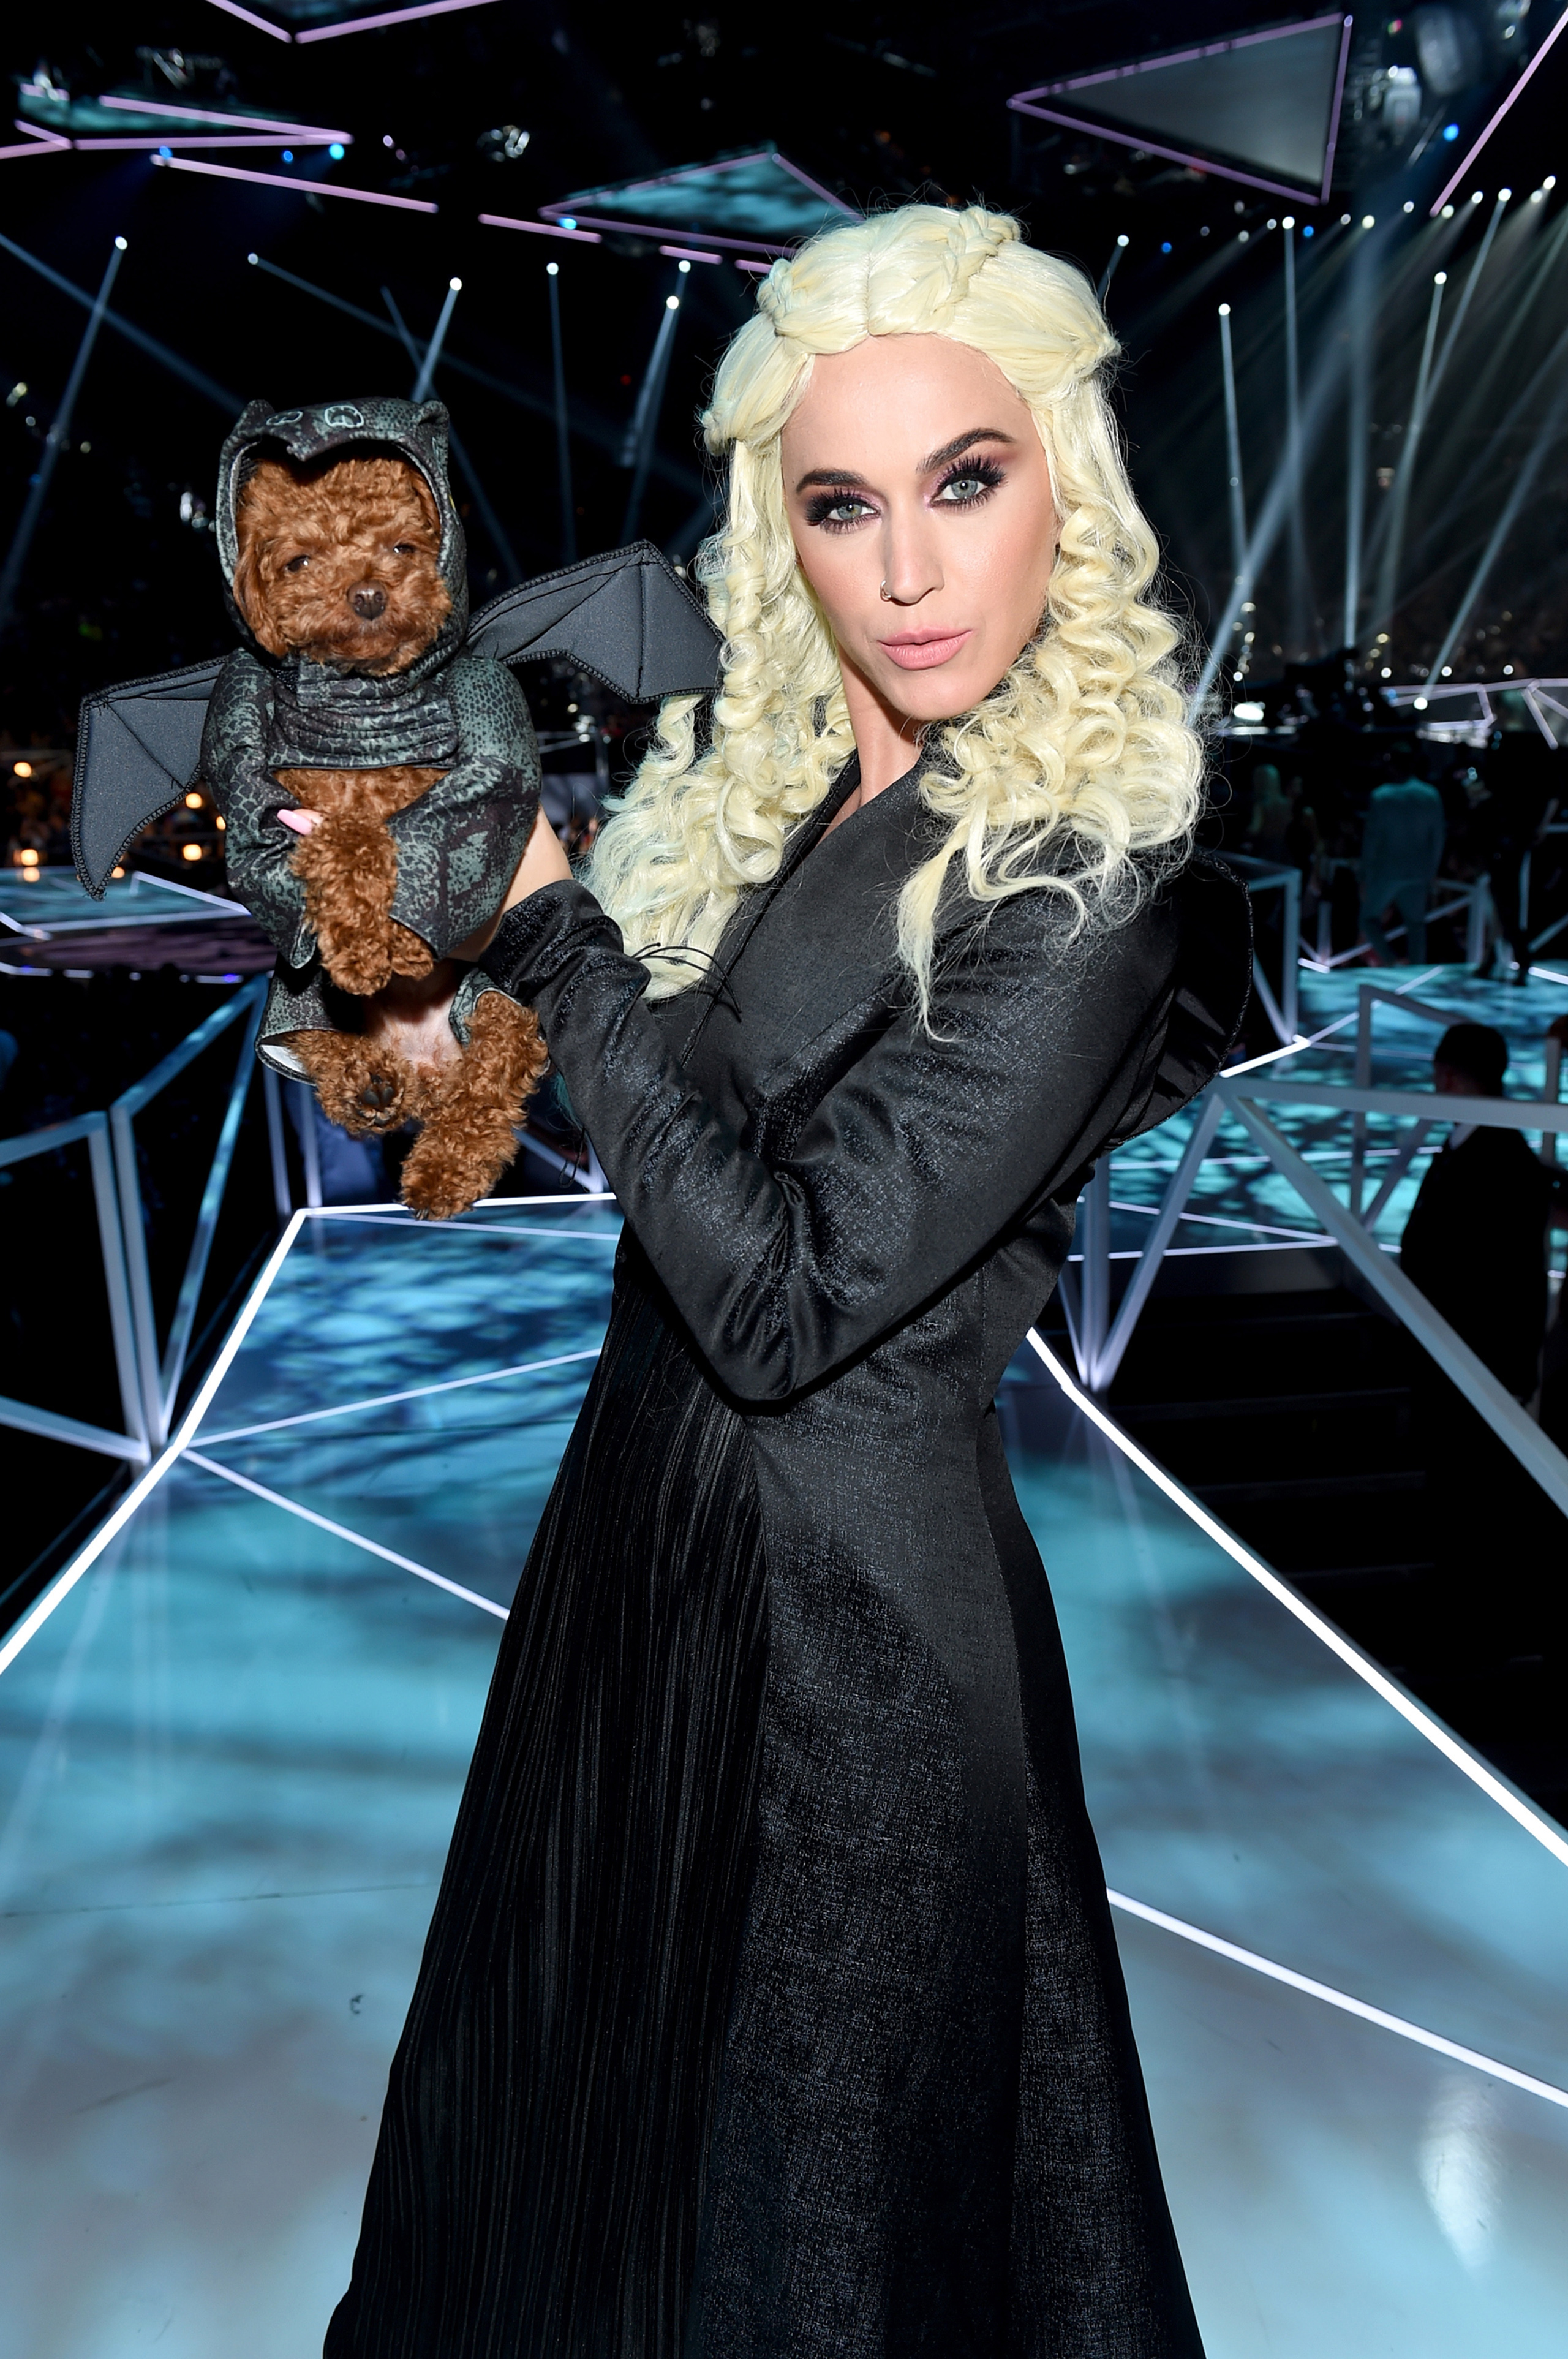 Katy Perry poses in costume during the 2017 MTV Video Music Awards at The Forum on August 27, 2017 in Inglewood, California.